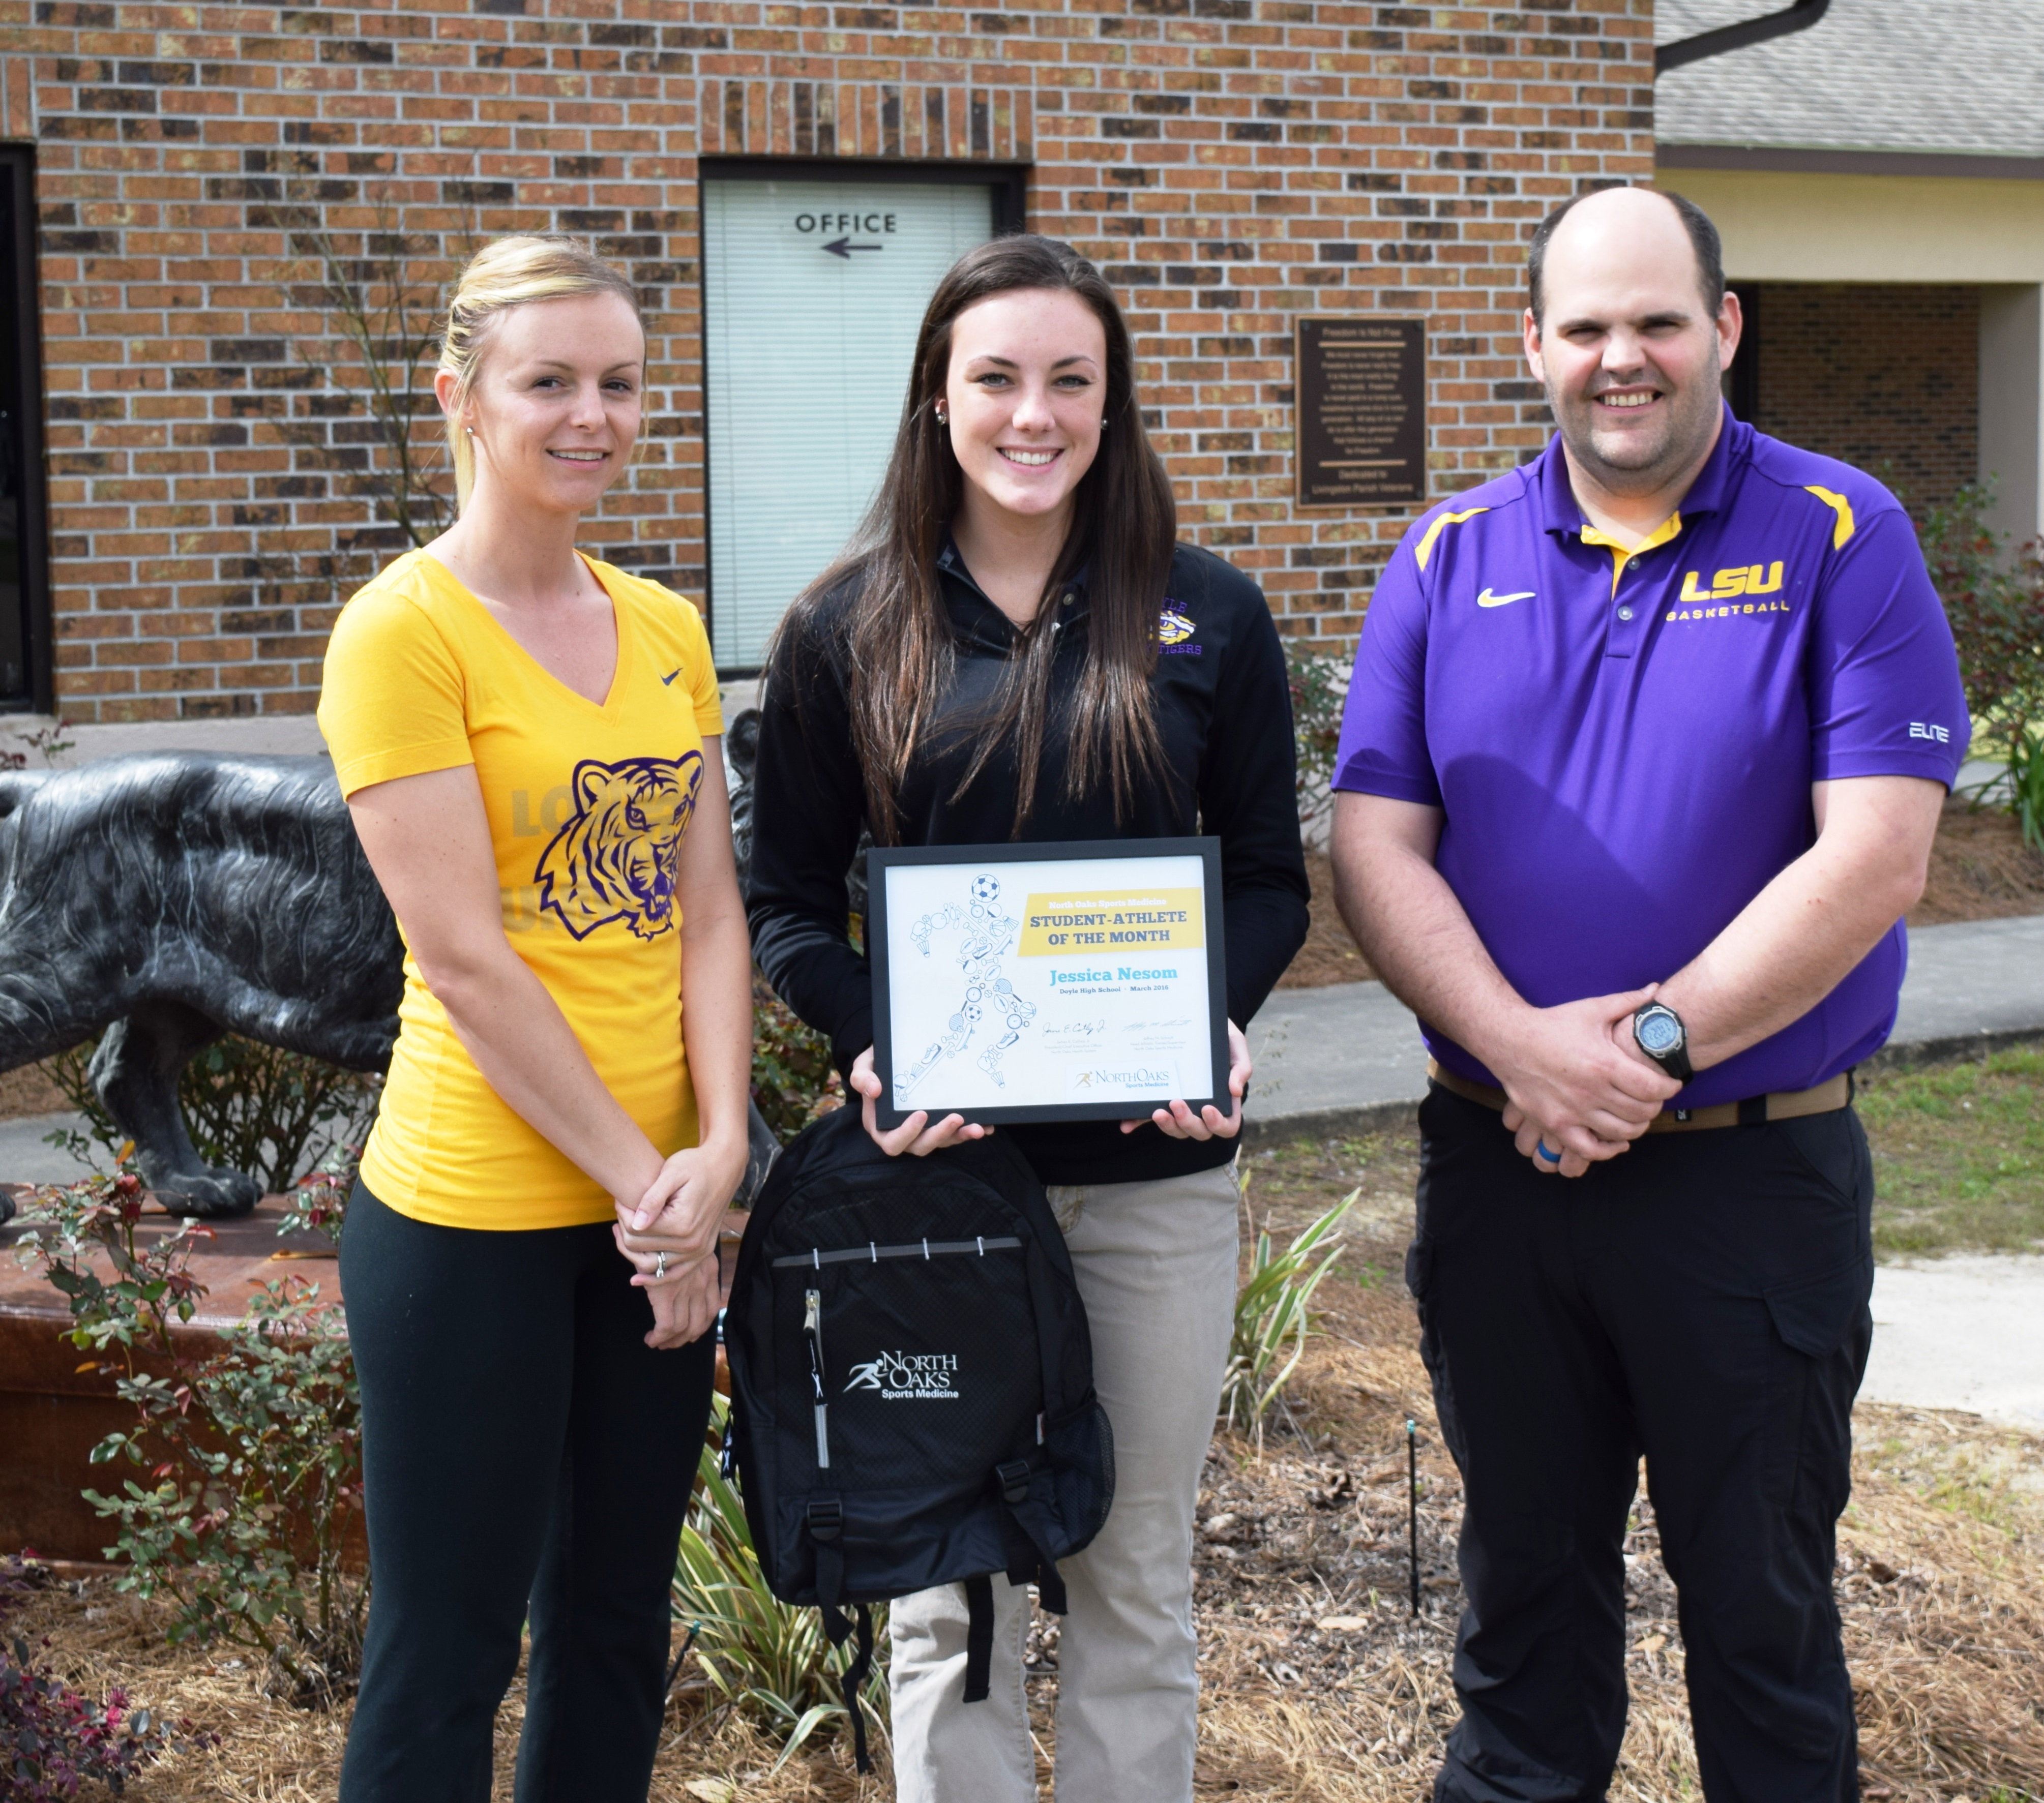 North Oaks Sports Medicine Student-Athletes of the Month for March ...